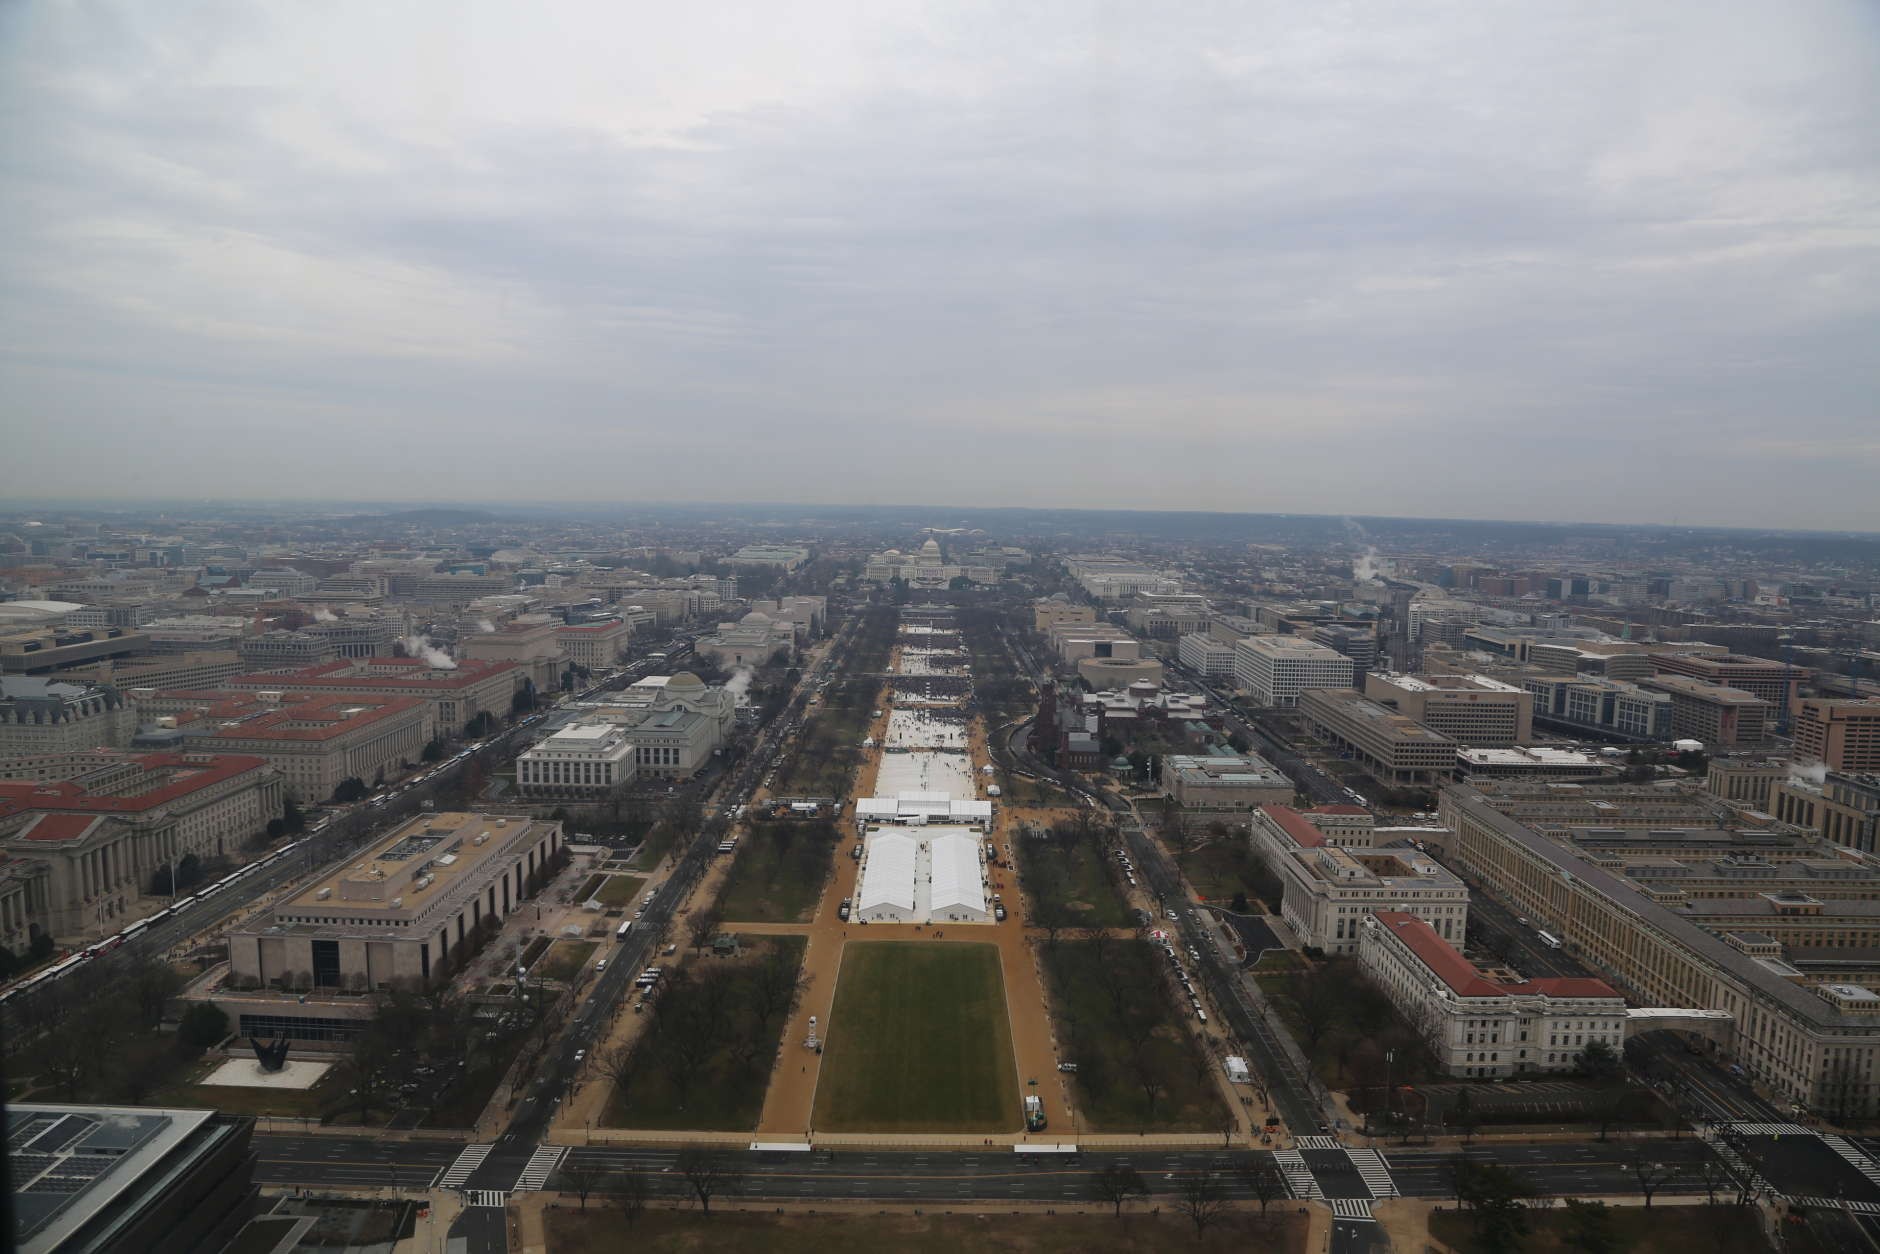 This photo shows the stretch of land near the Capitol's West Front stage on Inauguration Day. (Courtesy National Park Service)